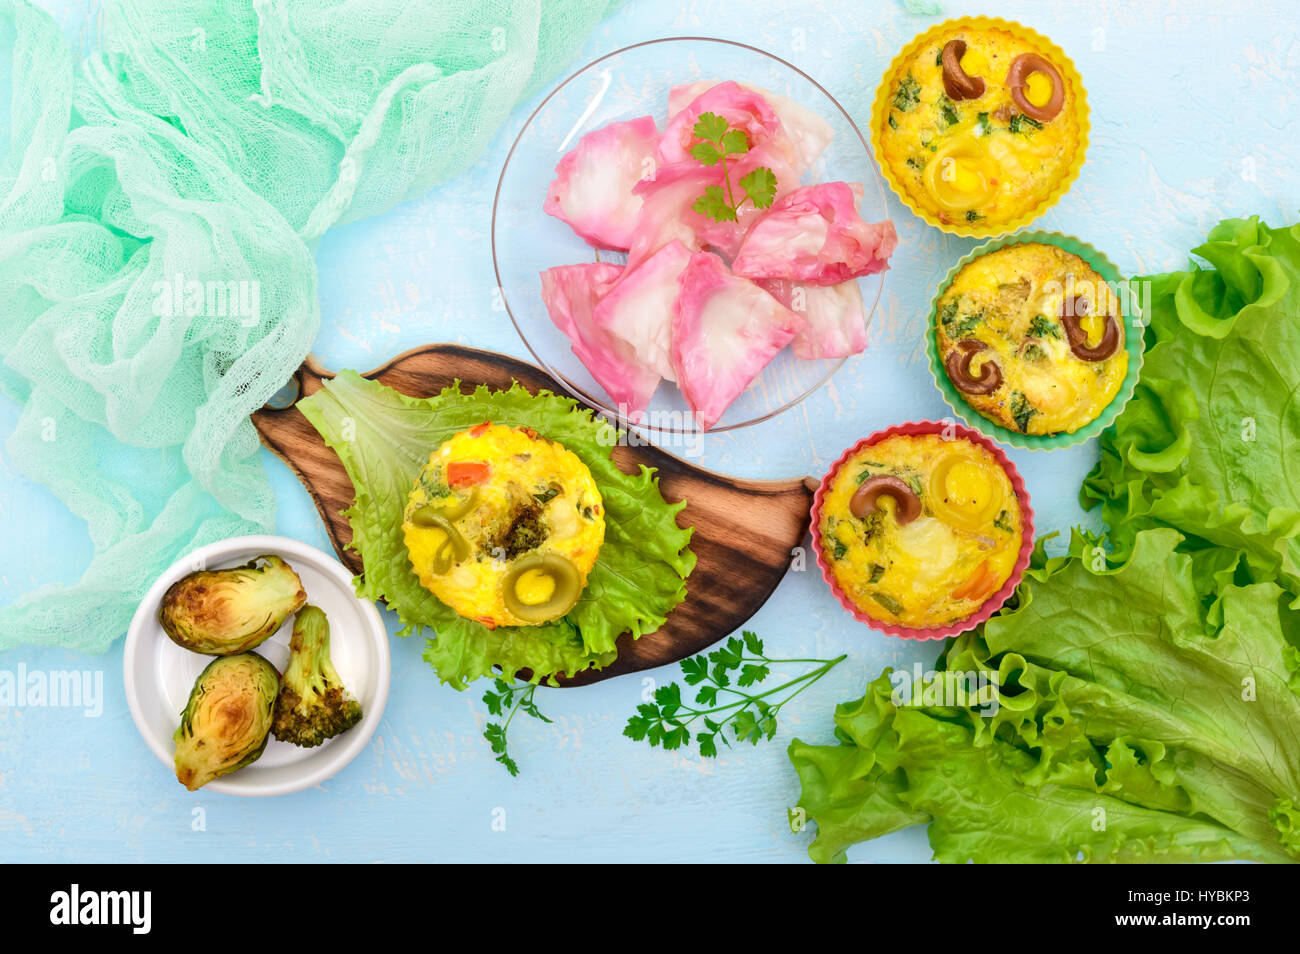 Omelette with colored pasta, mushrooms, vegetables and herbs, cooked in the form of mafins. The top view. Breakfast. - Stock Image